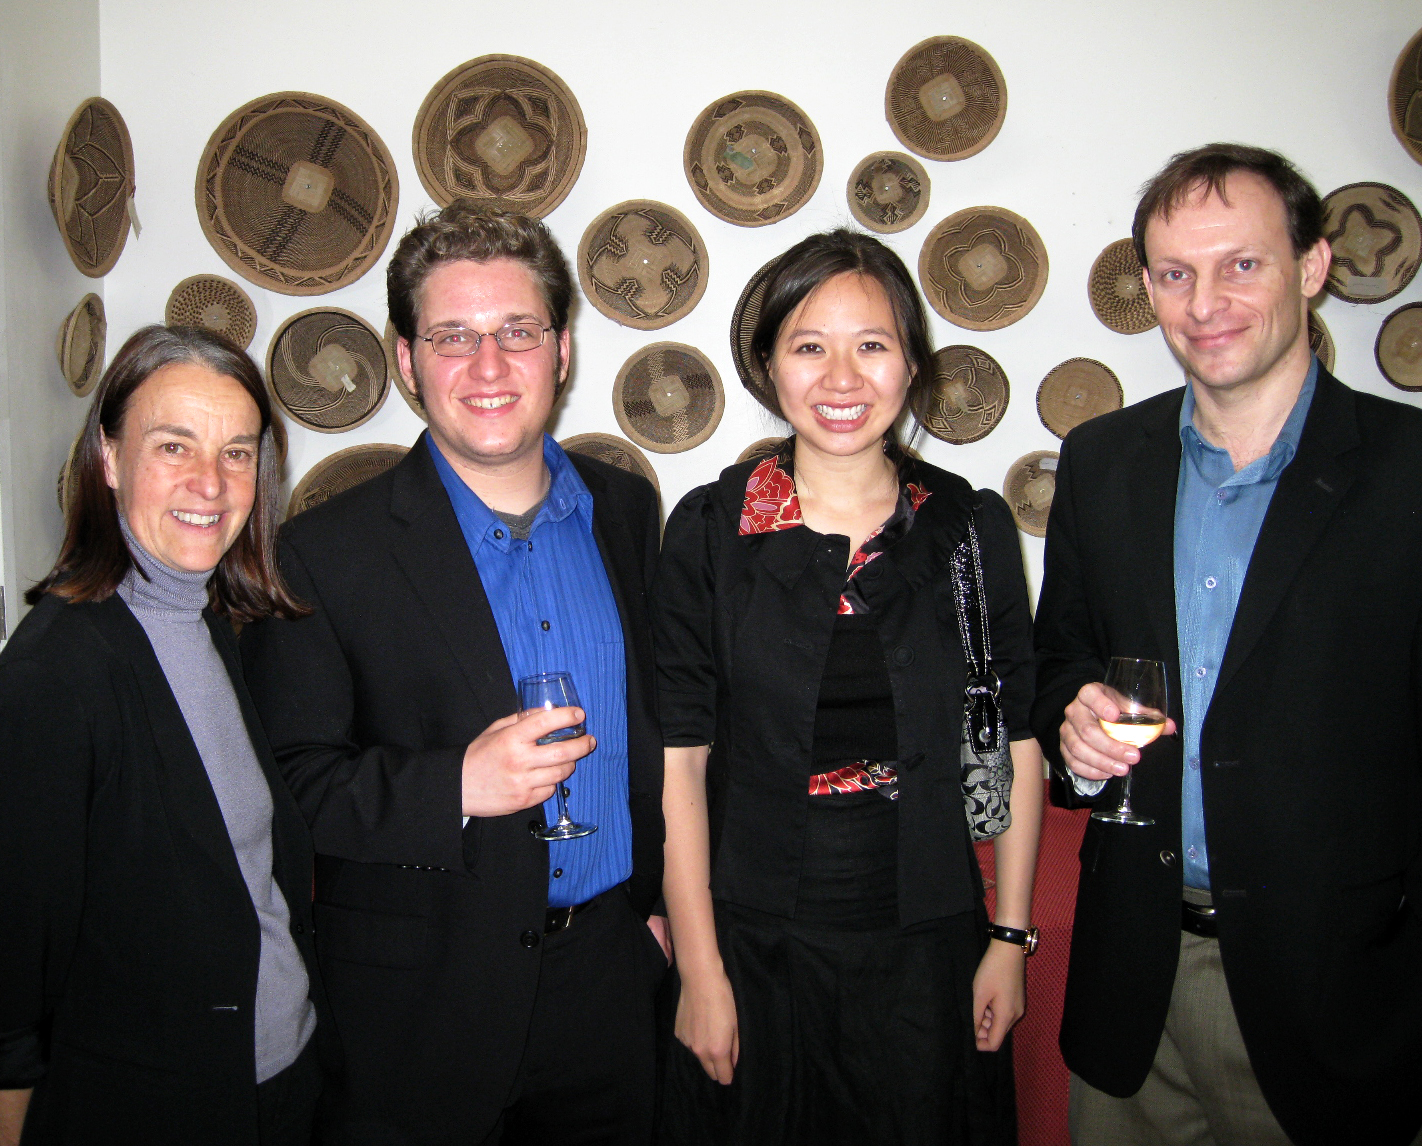 Martin Benvenuto of WomenSing, mentor Libby Larsen, and 2010 composers Elizabeth Lim and Joshua Fishbein.